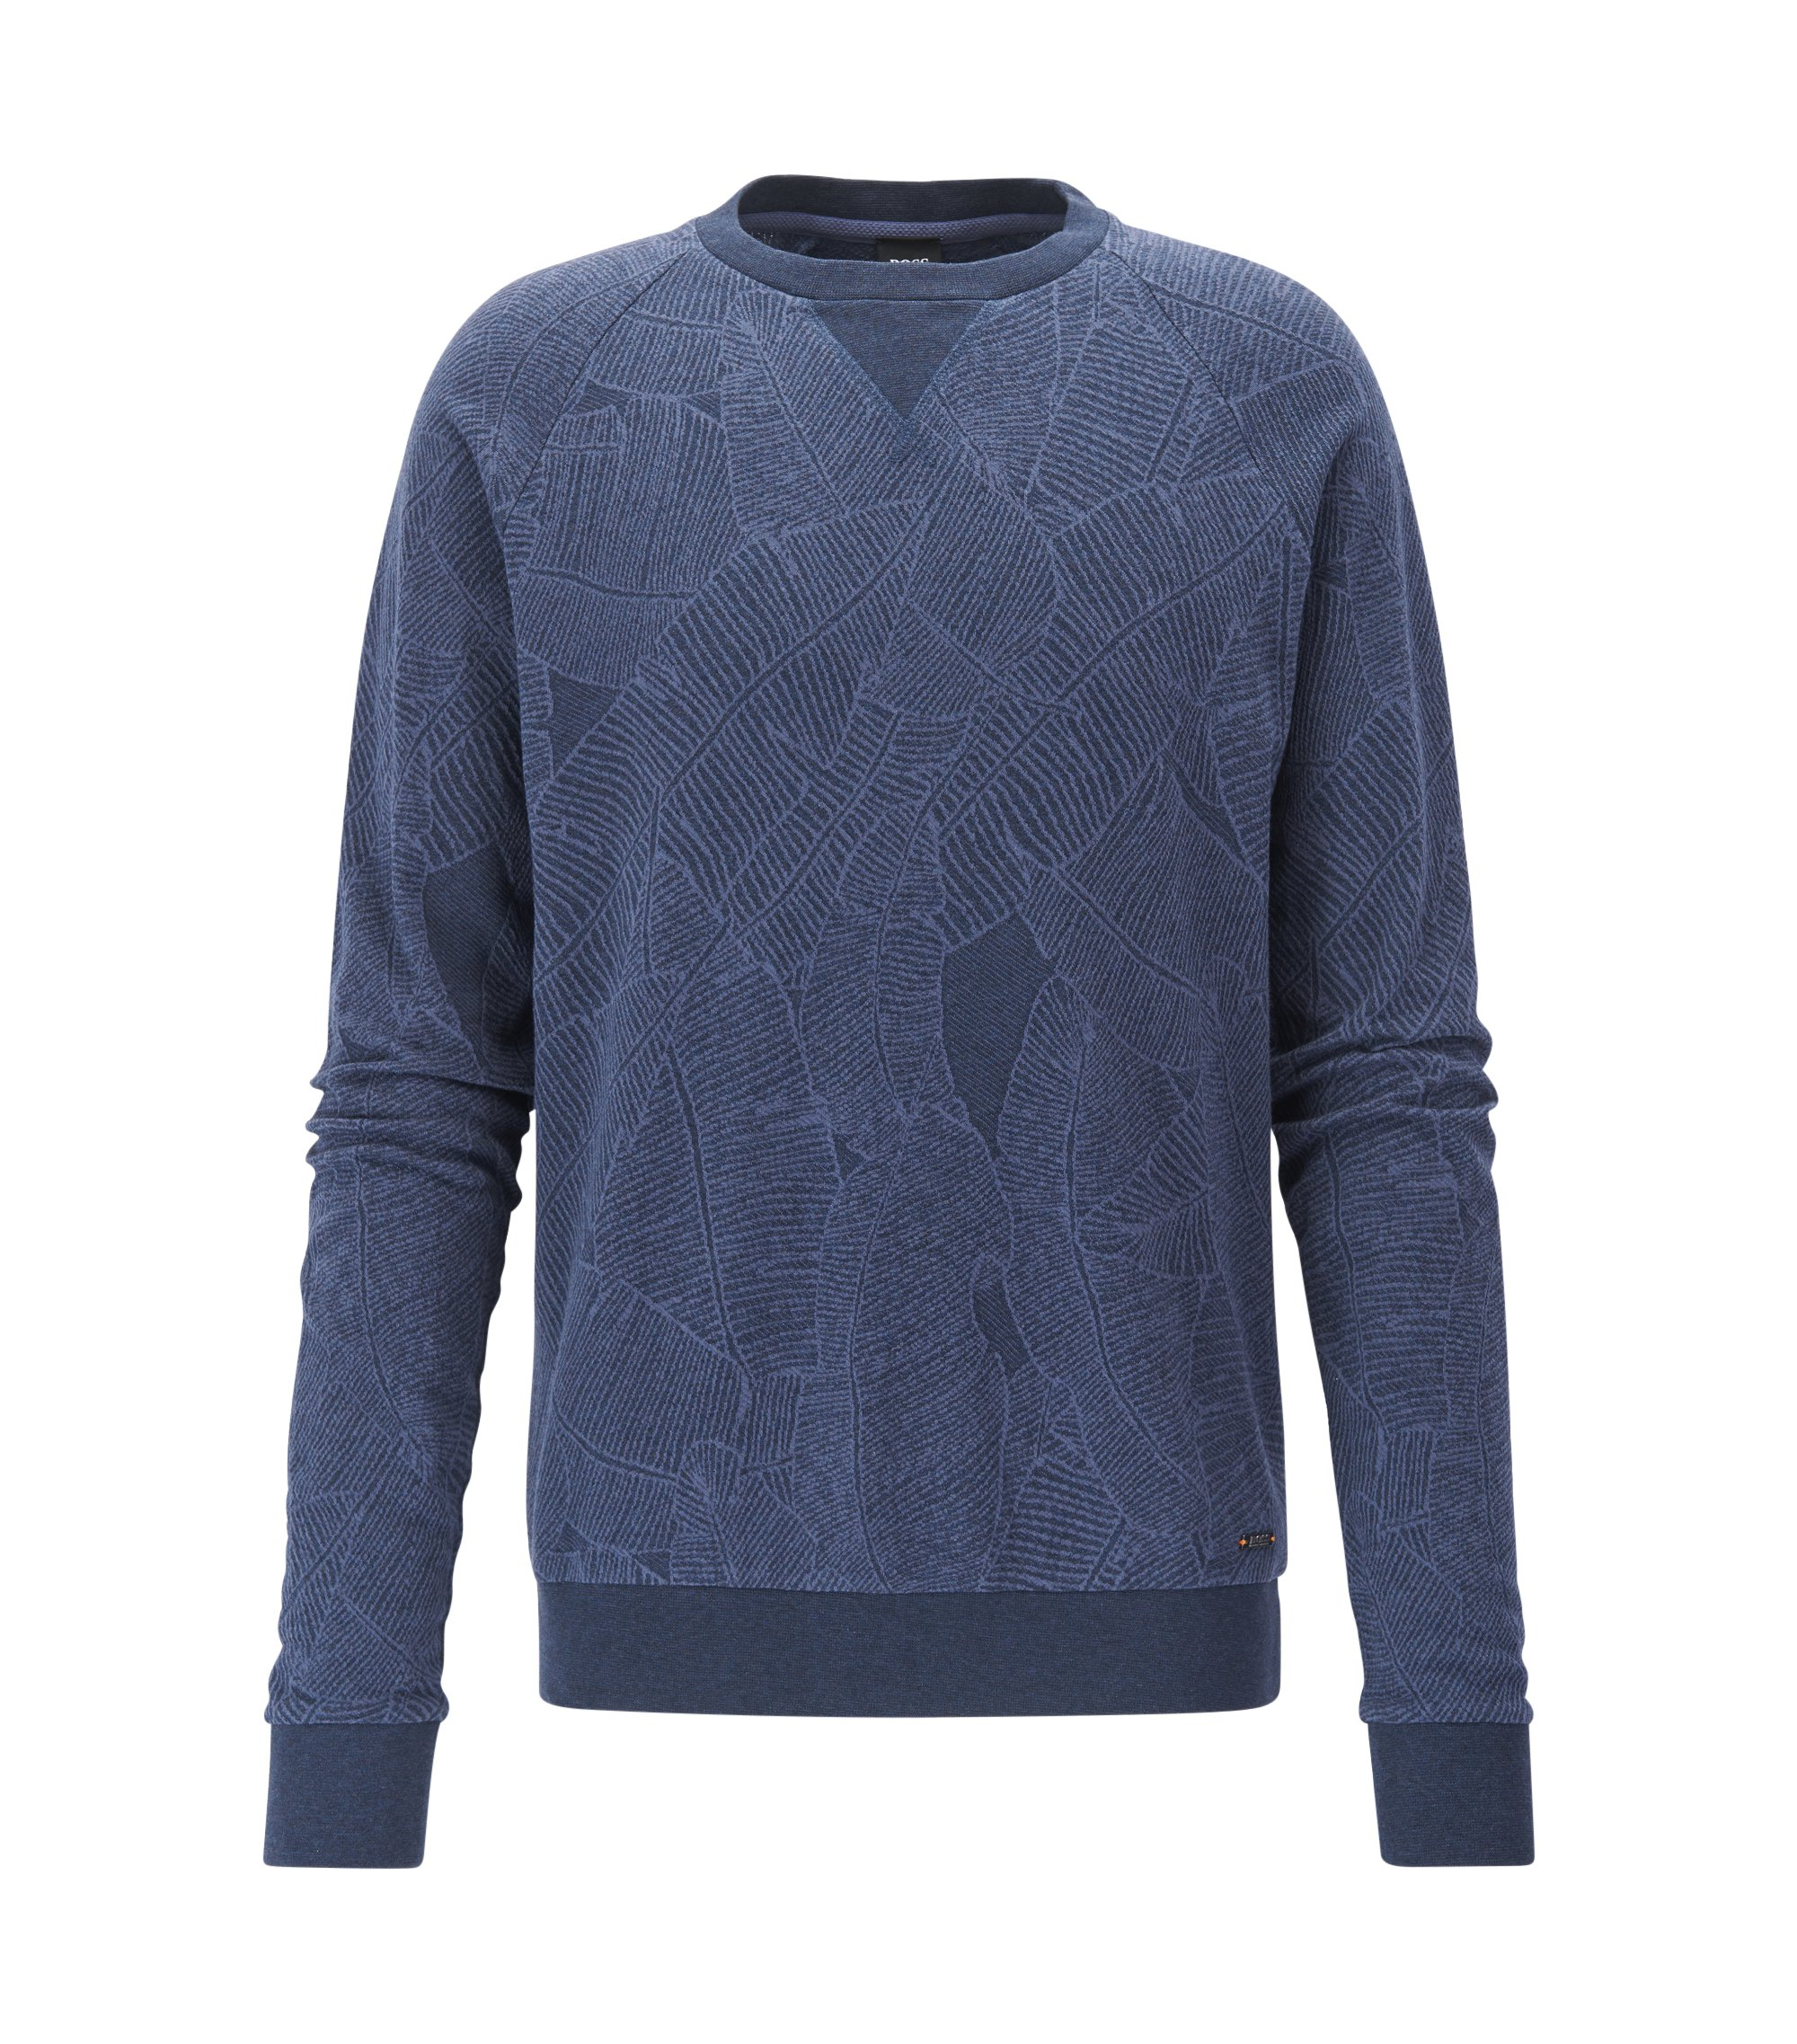 Leaf-Print Cotton Sweatshirt | Wenti, Dark Blue